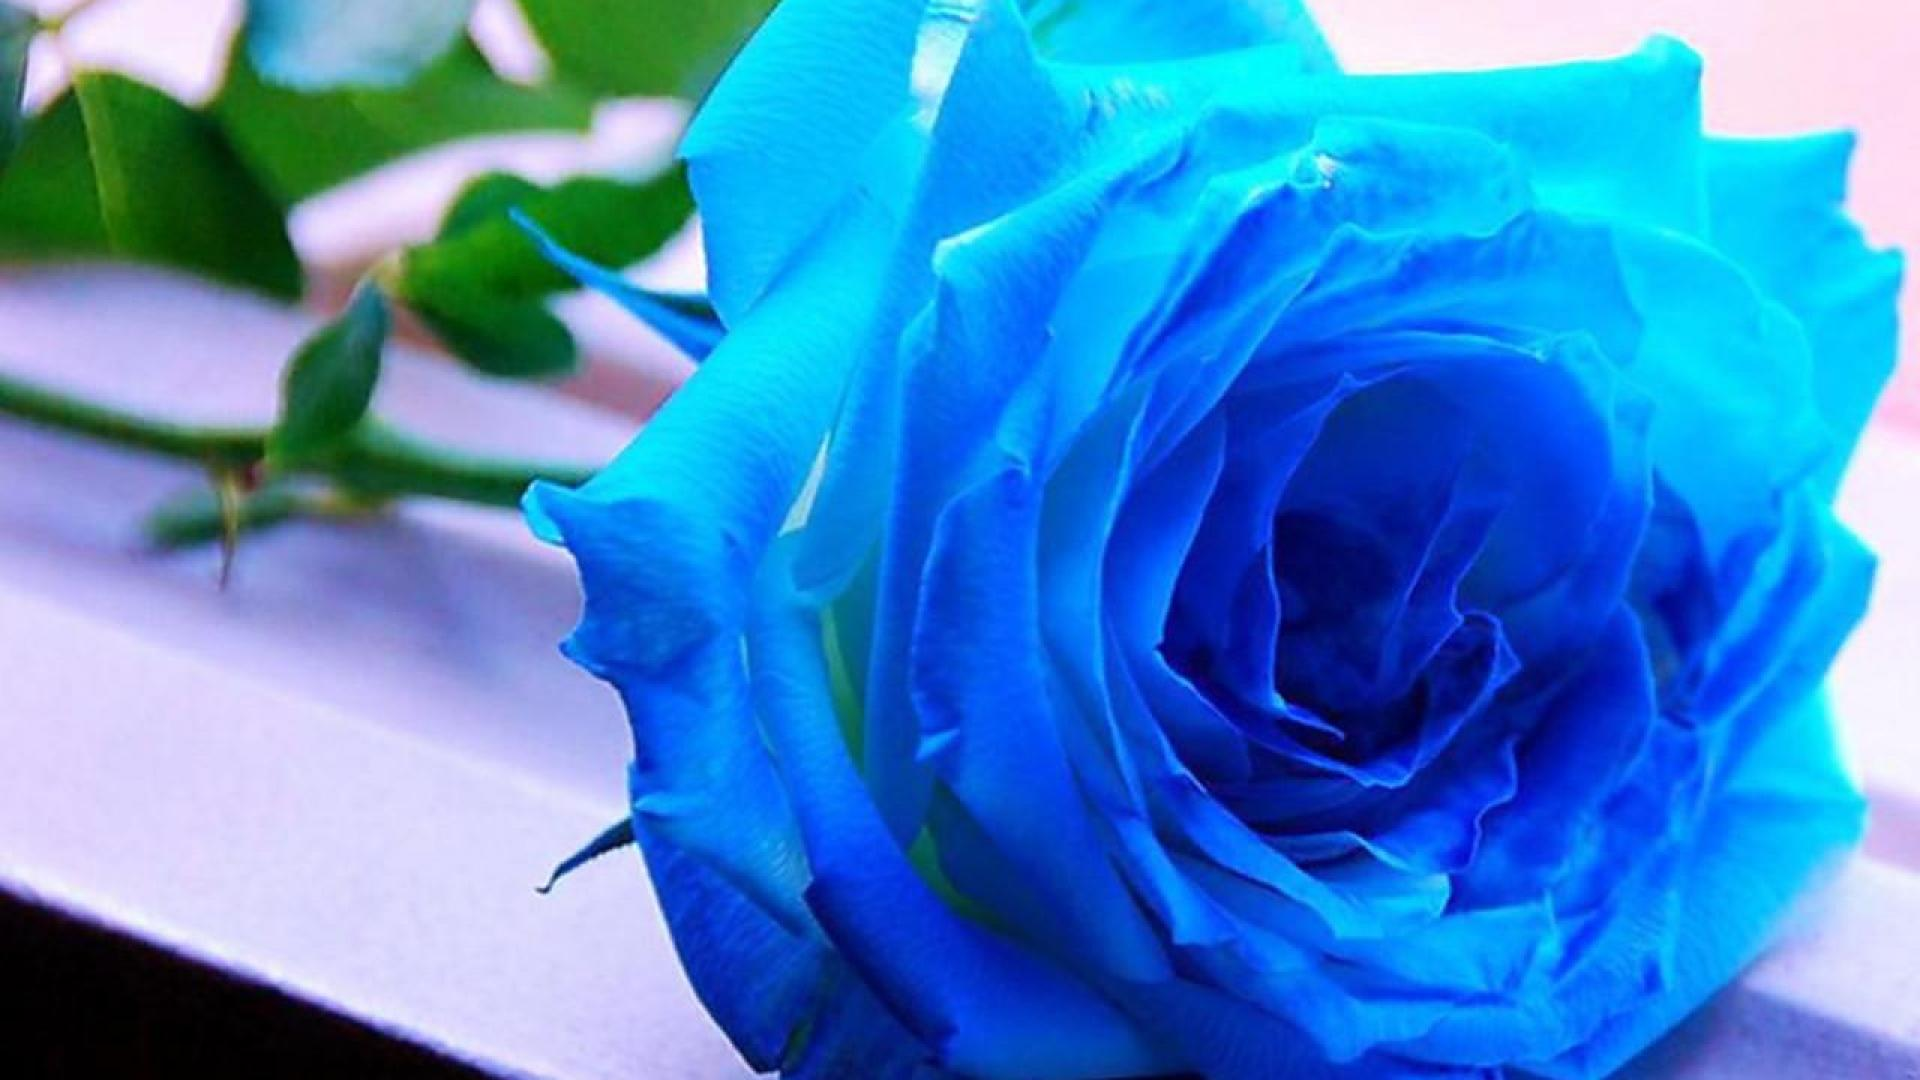 blue-rose-wallpaper-hd-backgrounds-for-desktop-09